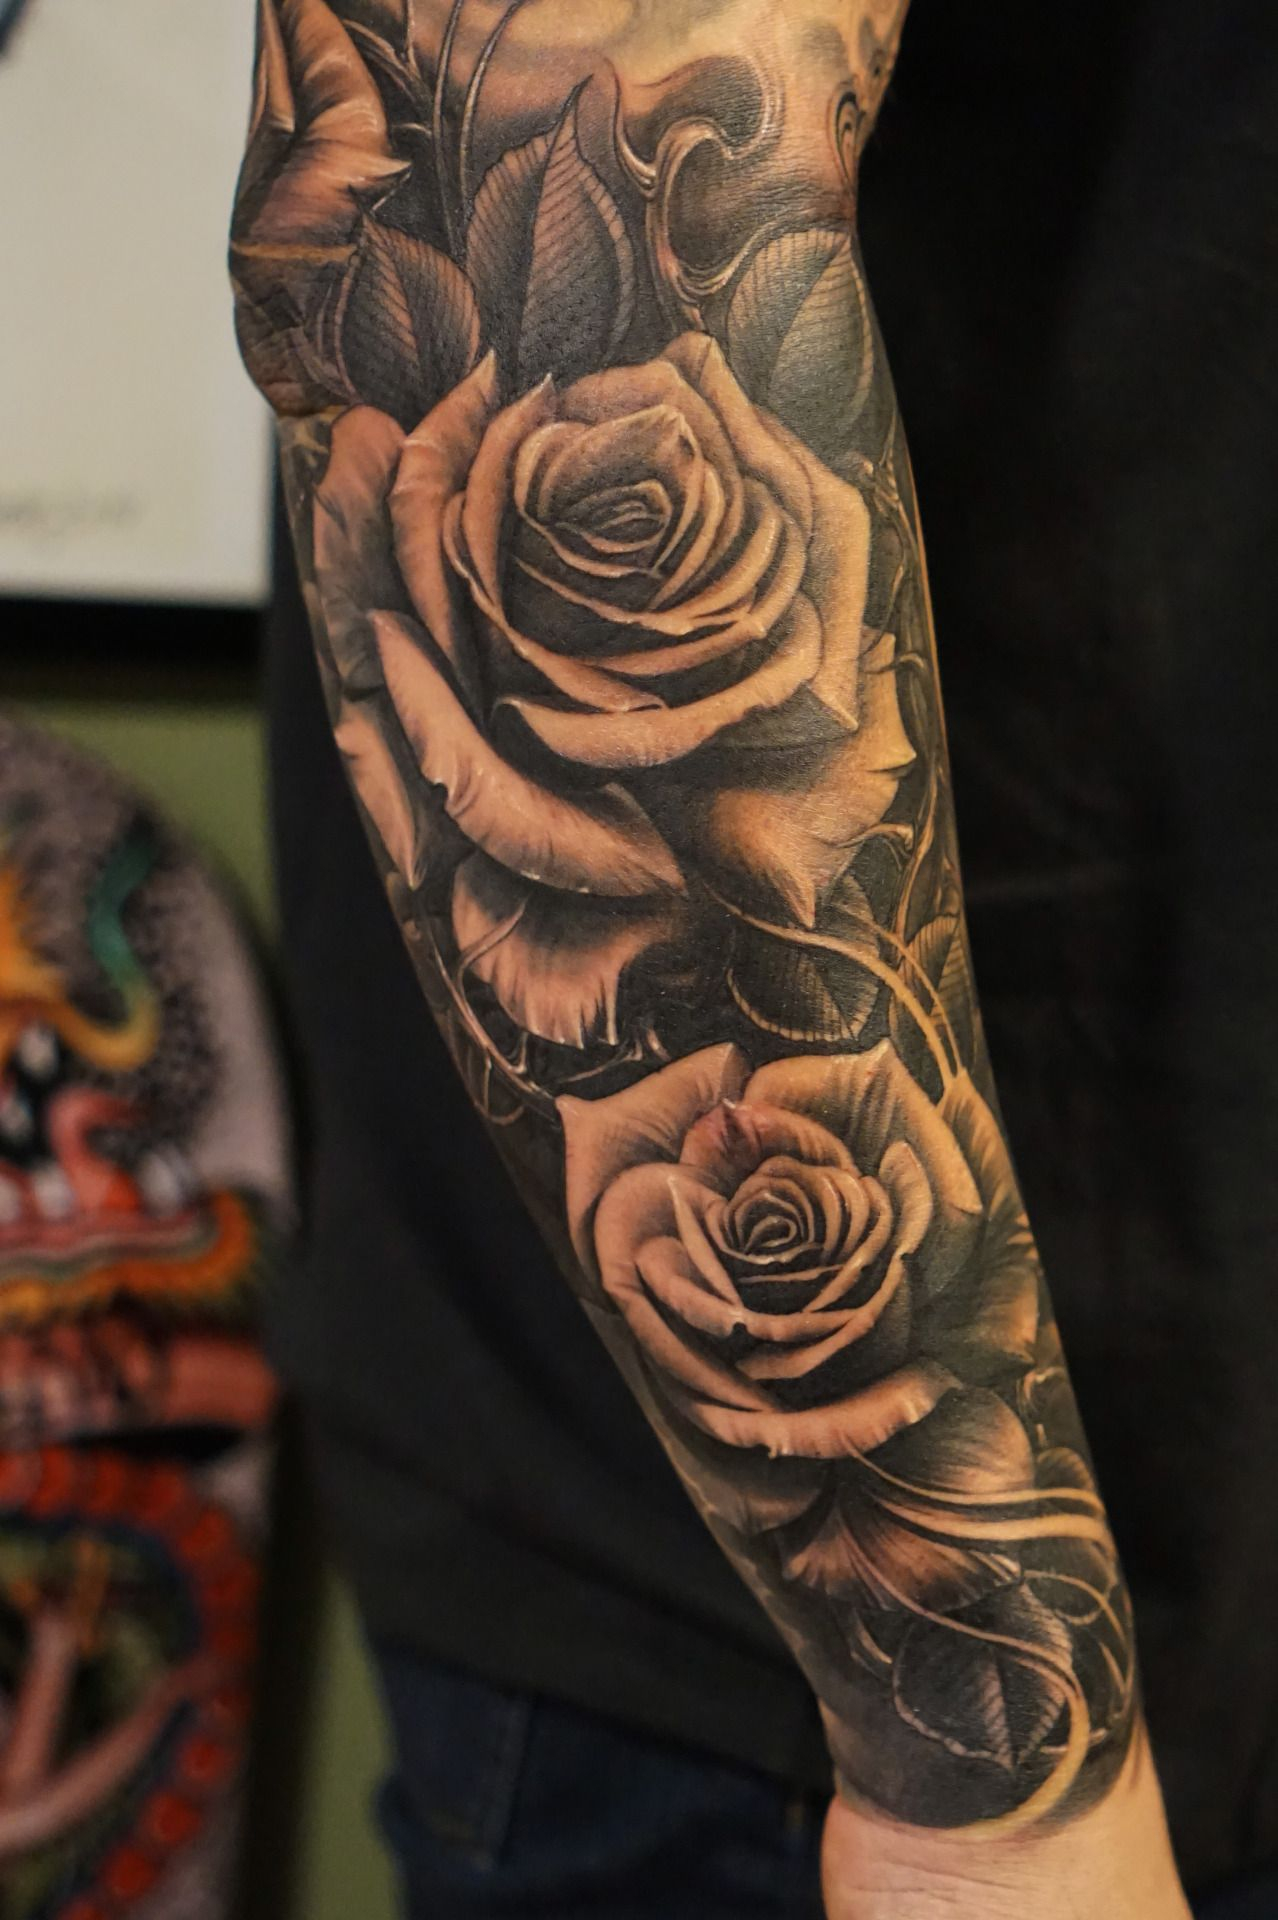 Roses Vetoe Black Label Art Co Los Angeles Usa Tattoo I inside sizing 1278 X 1920